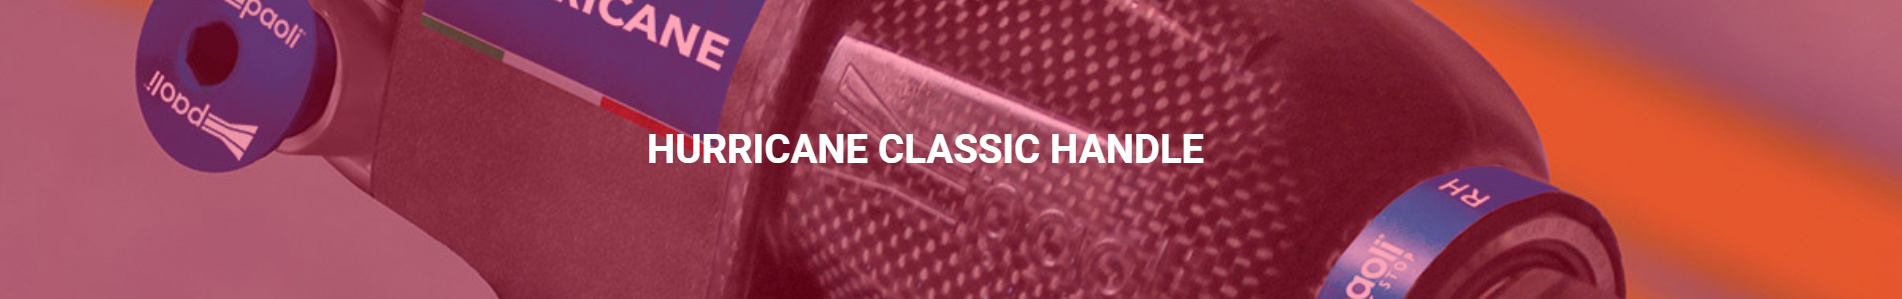 Hurricane classic handle